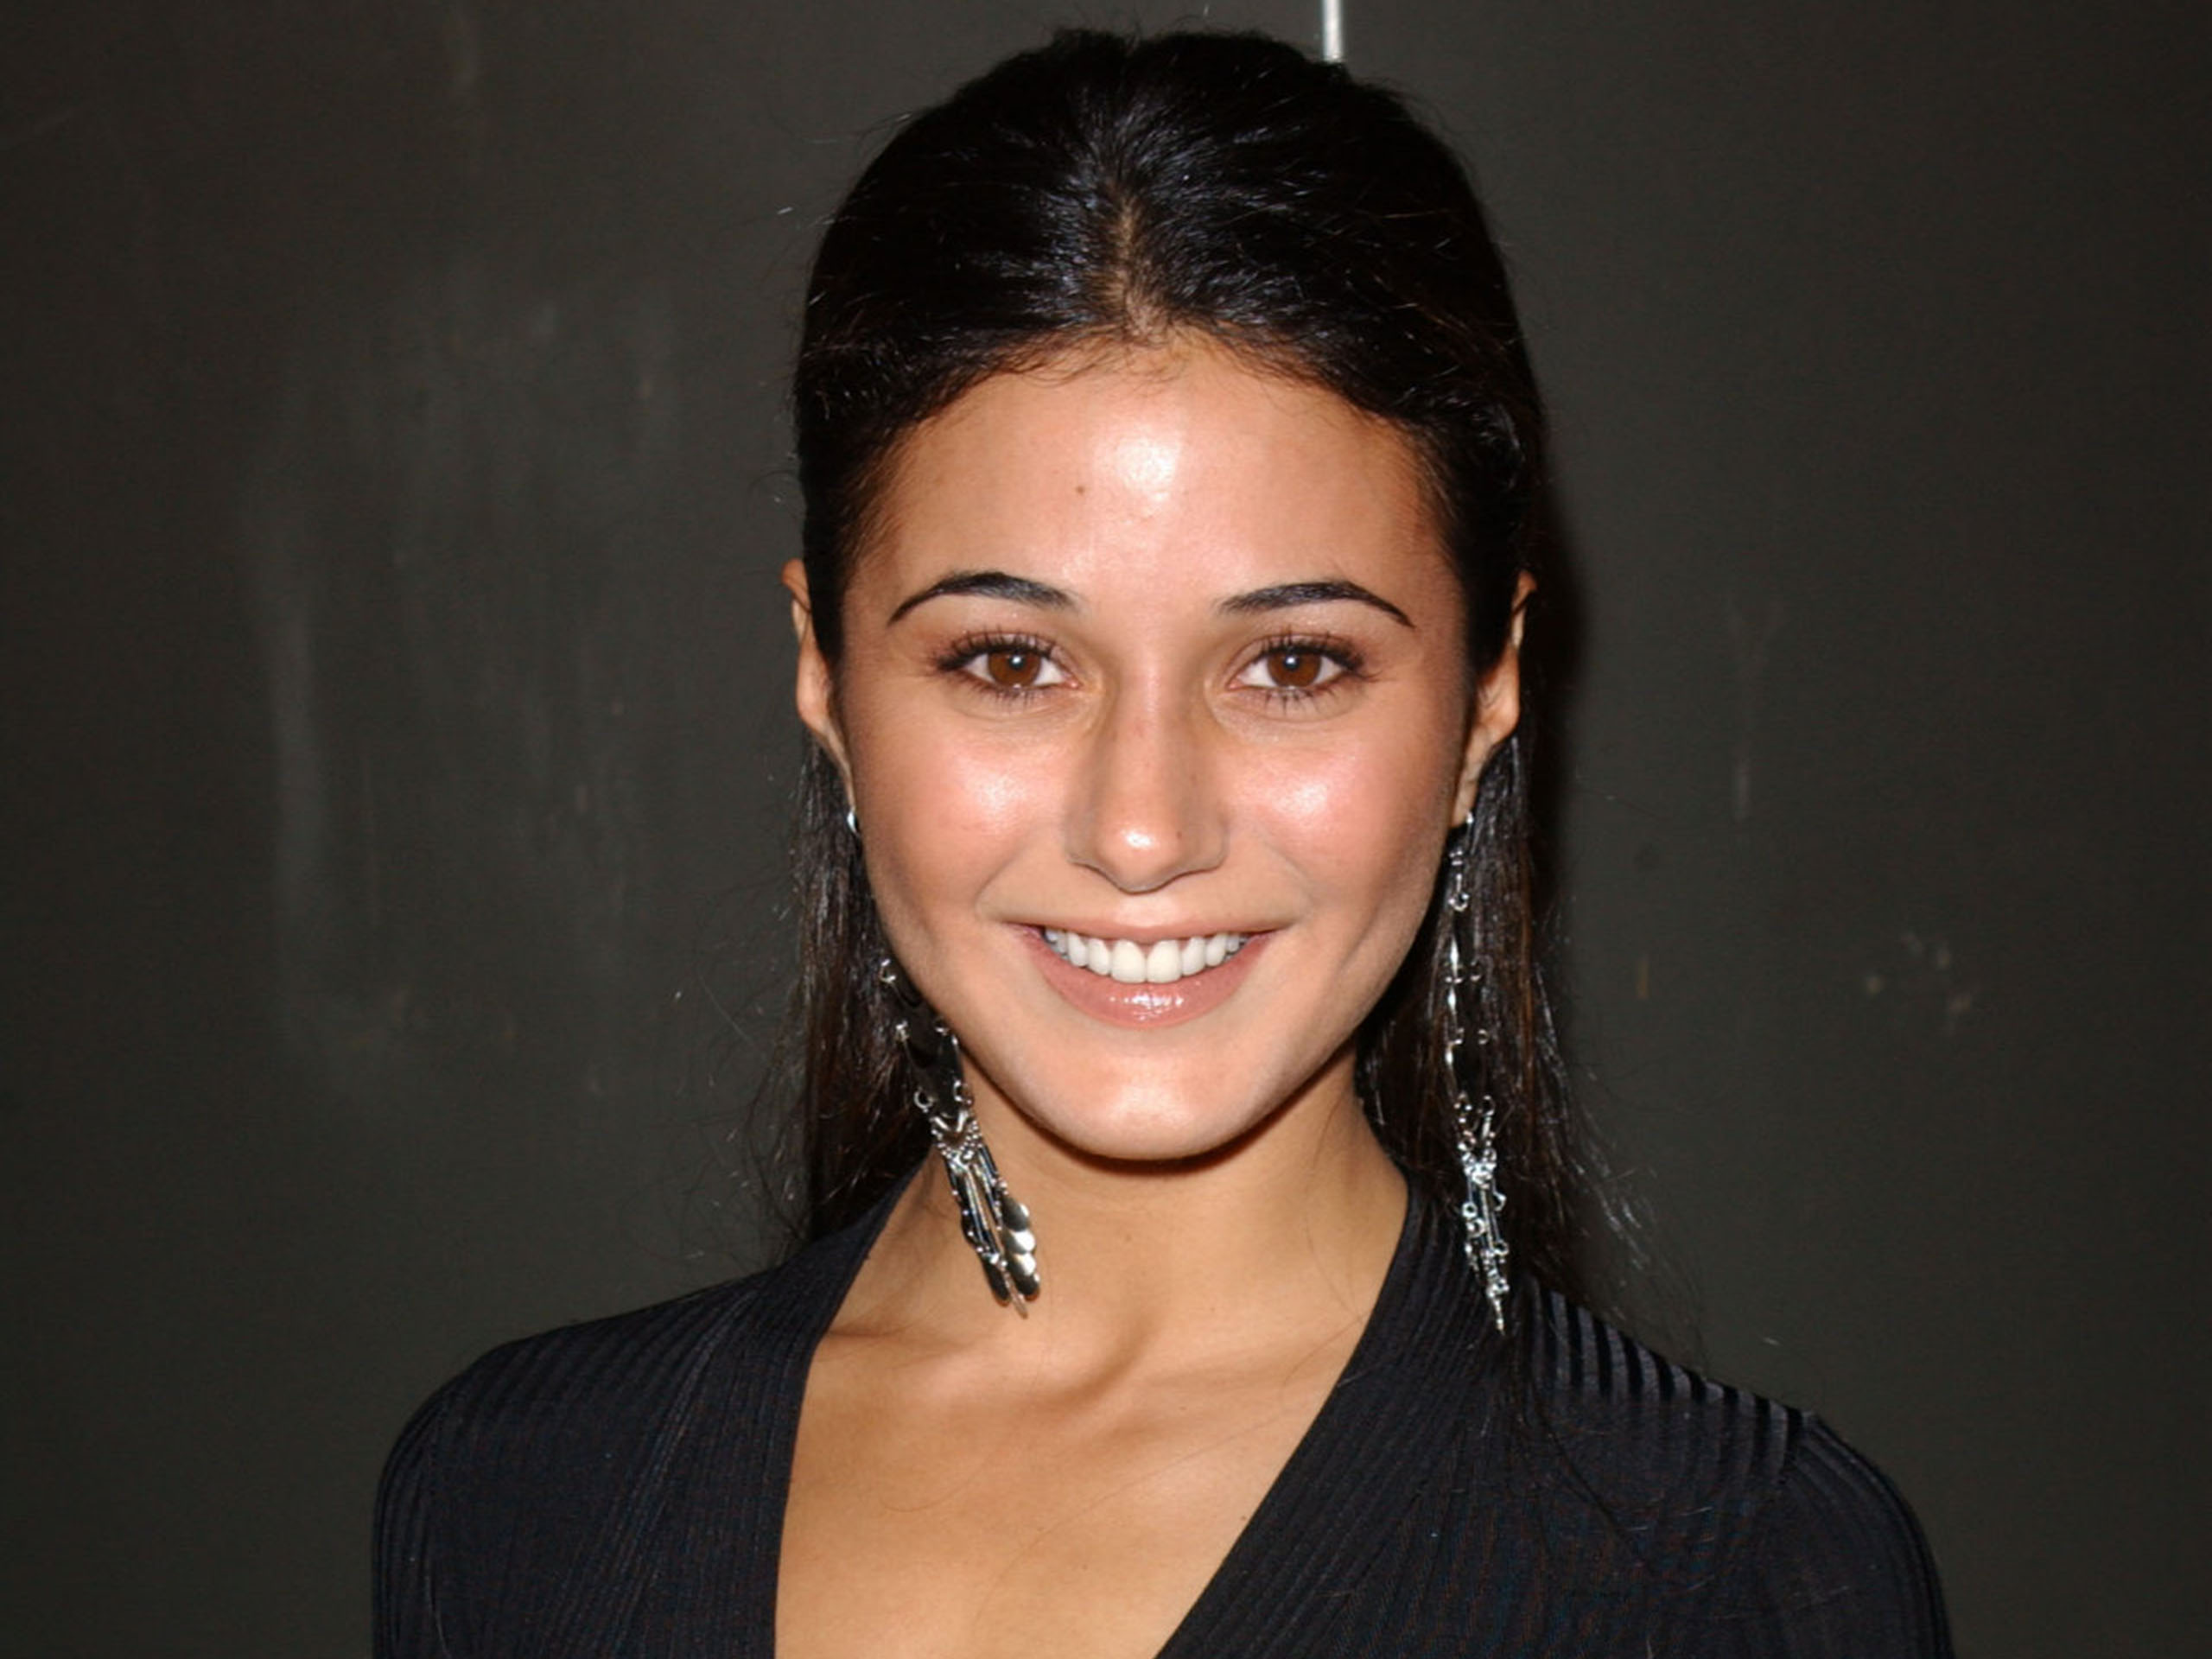 emmanuelle chriqui computer wallpaper 52808